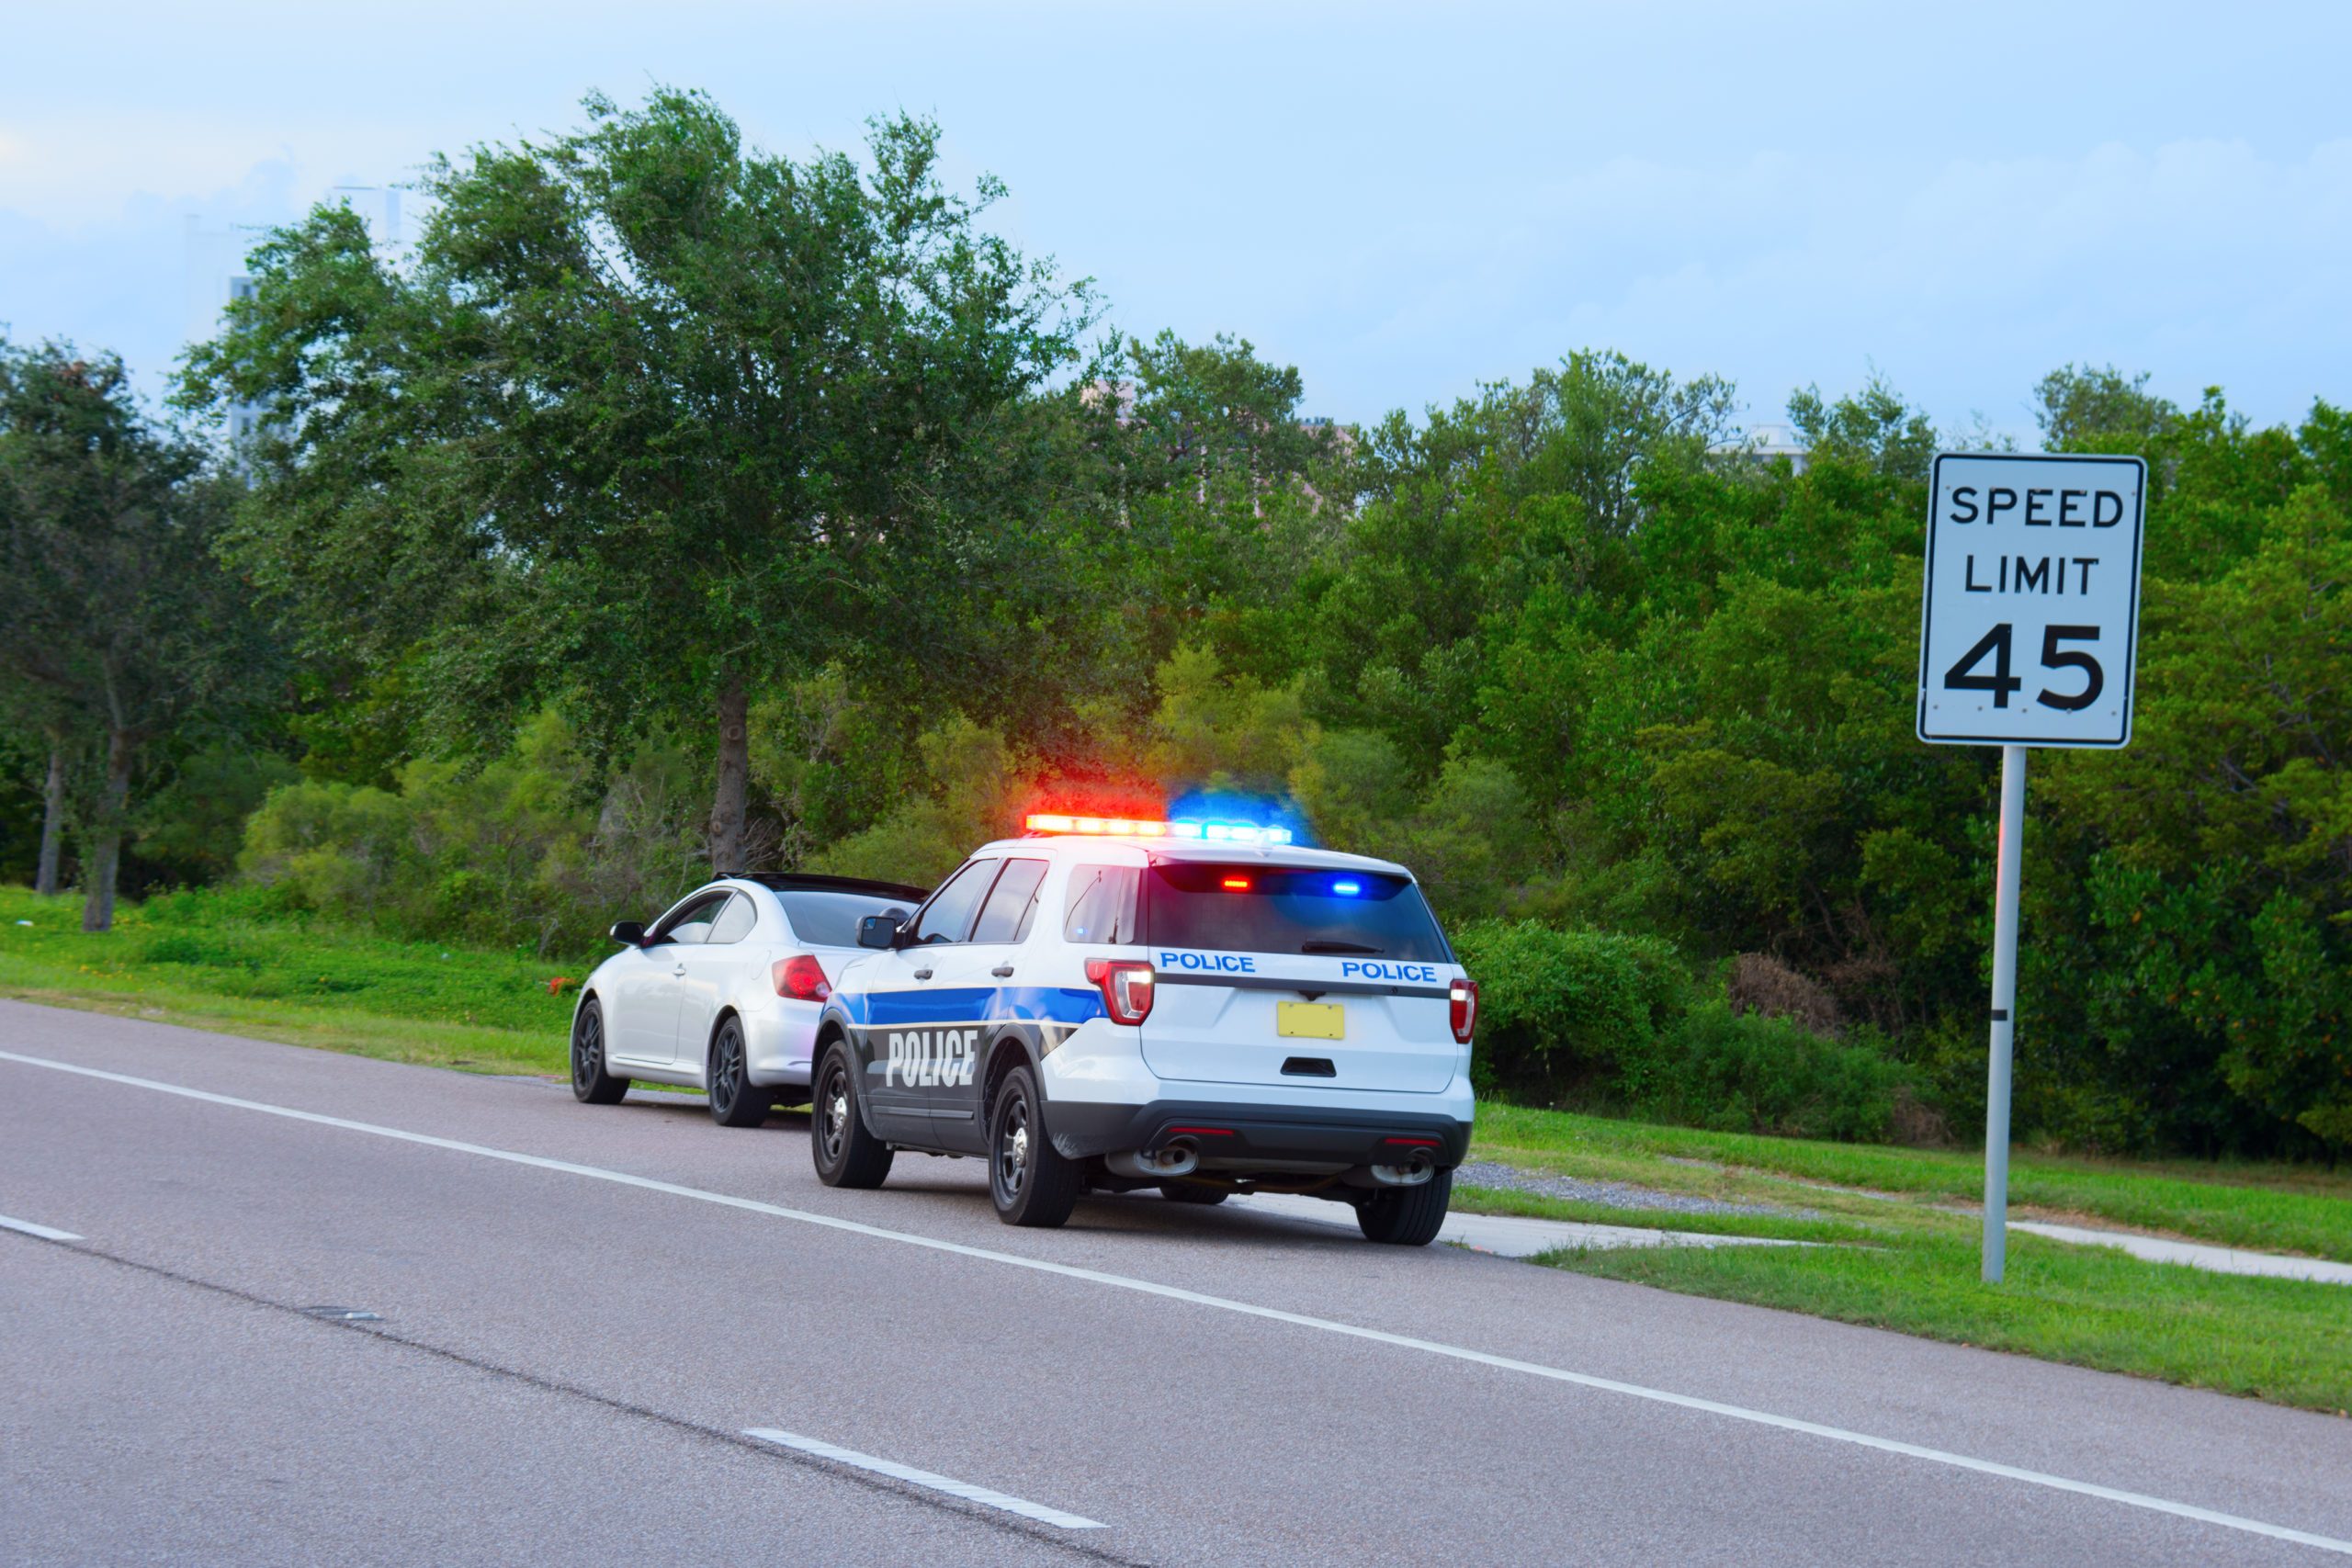 Police vehicle pulls over car [Mike Focus/Shutterstock]